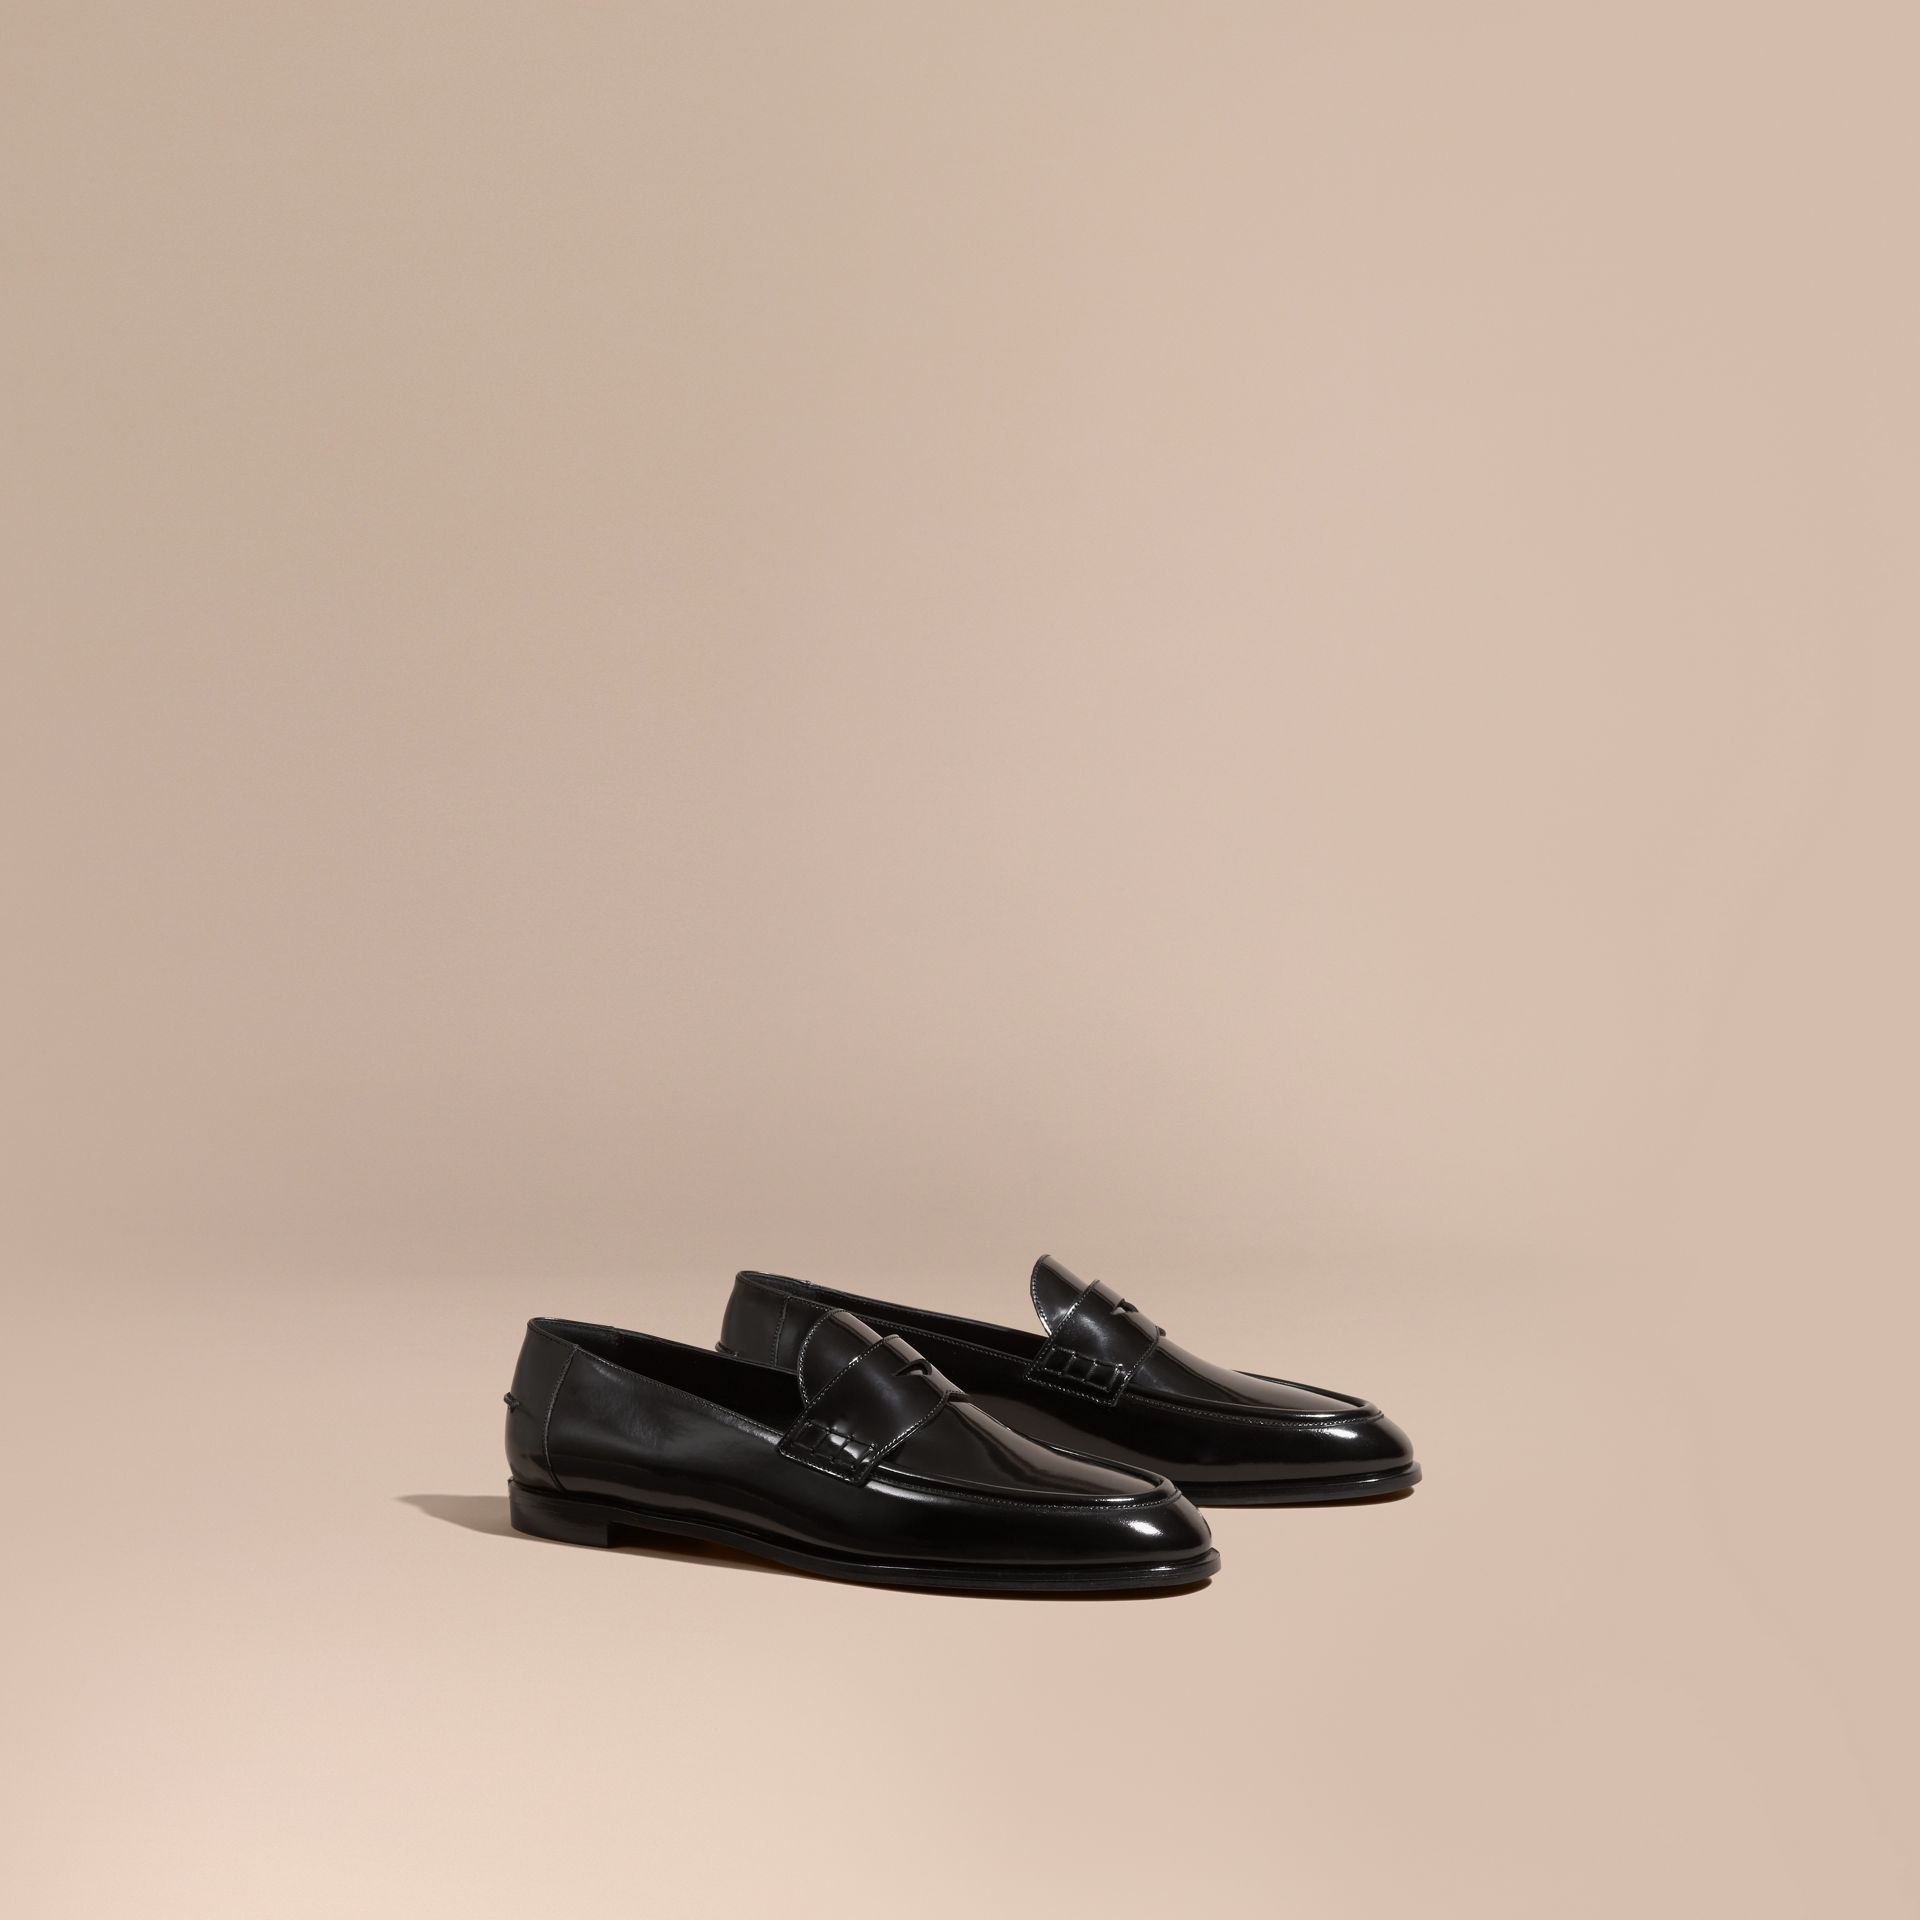 Black Polished Leather Loafers Black - gallery image 1